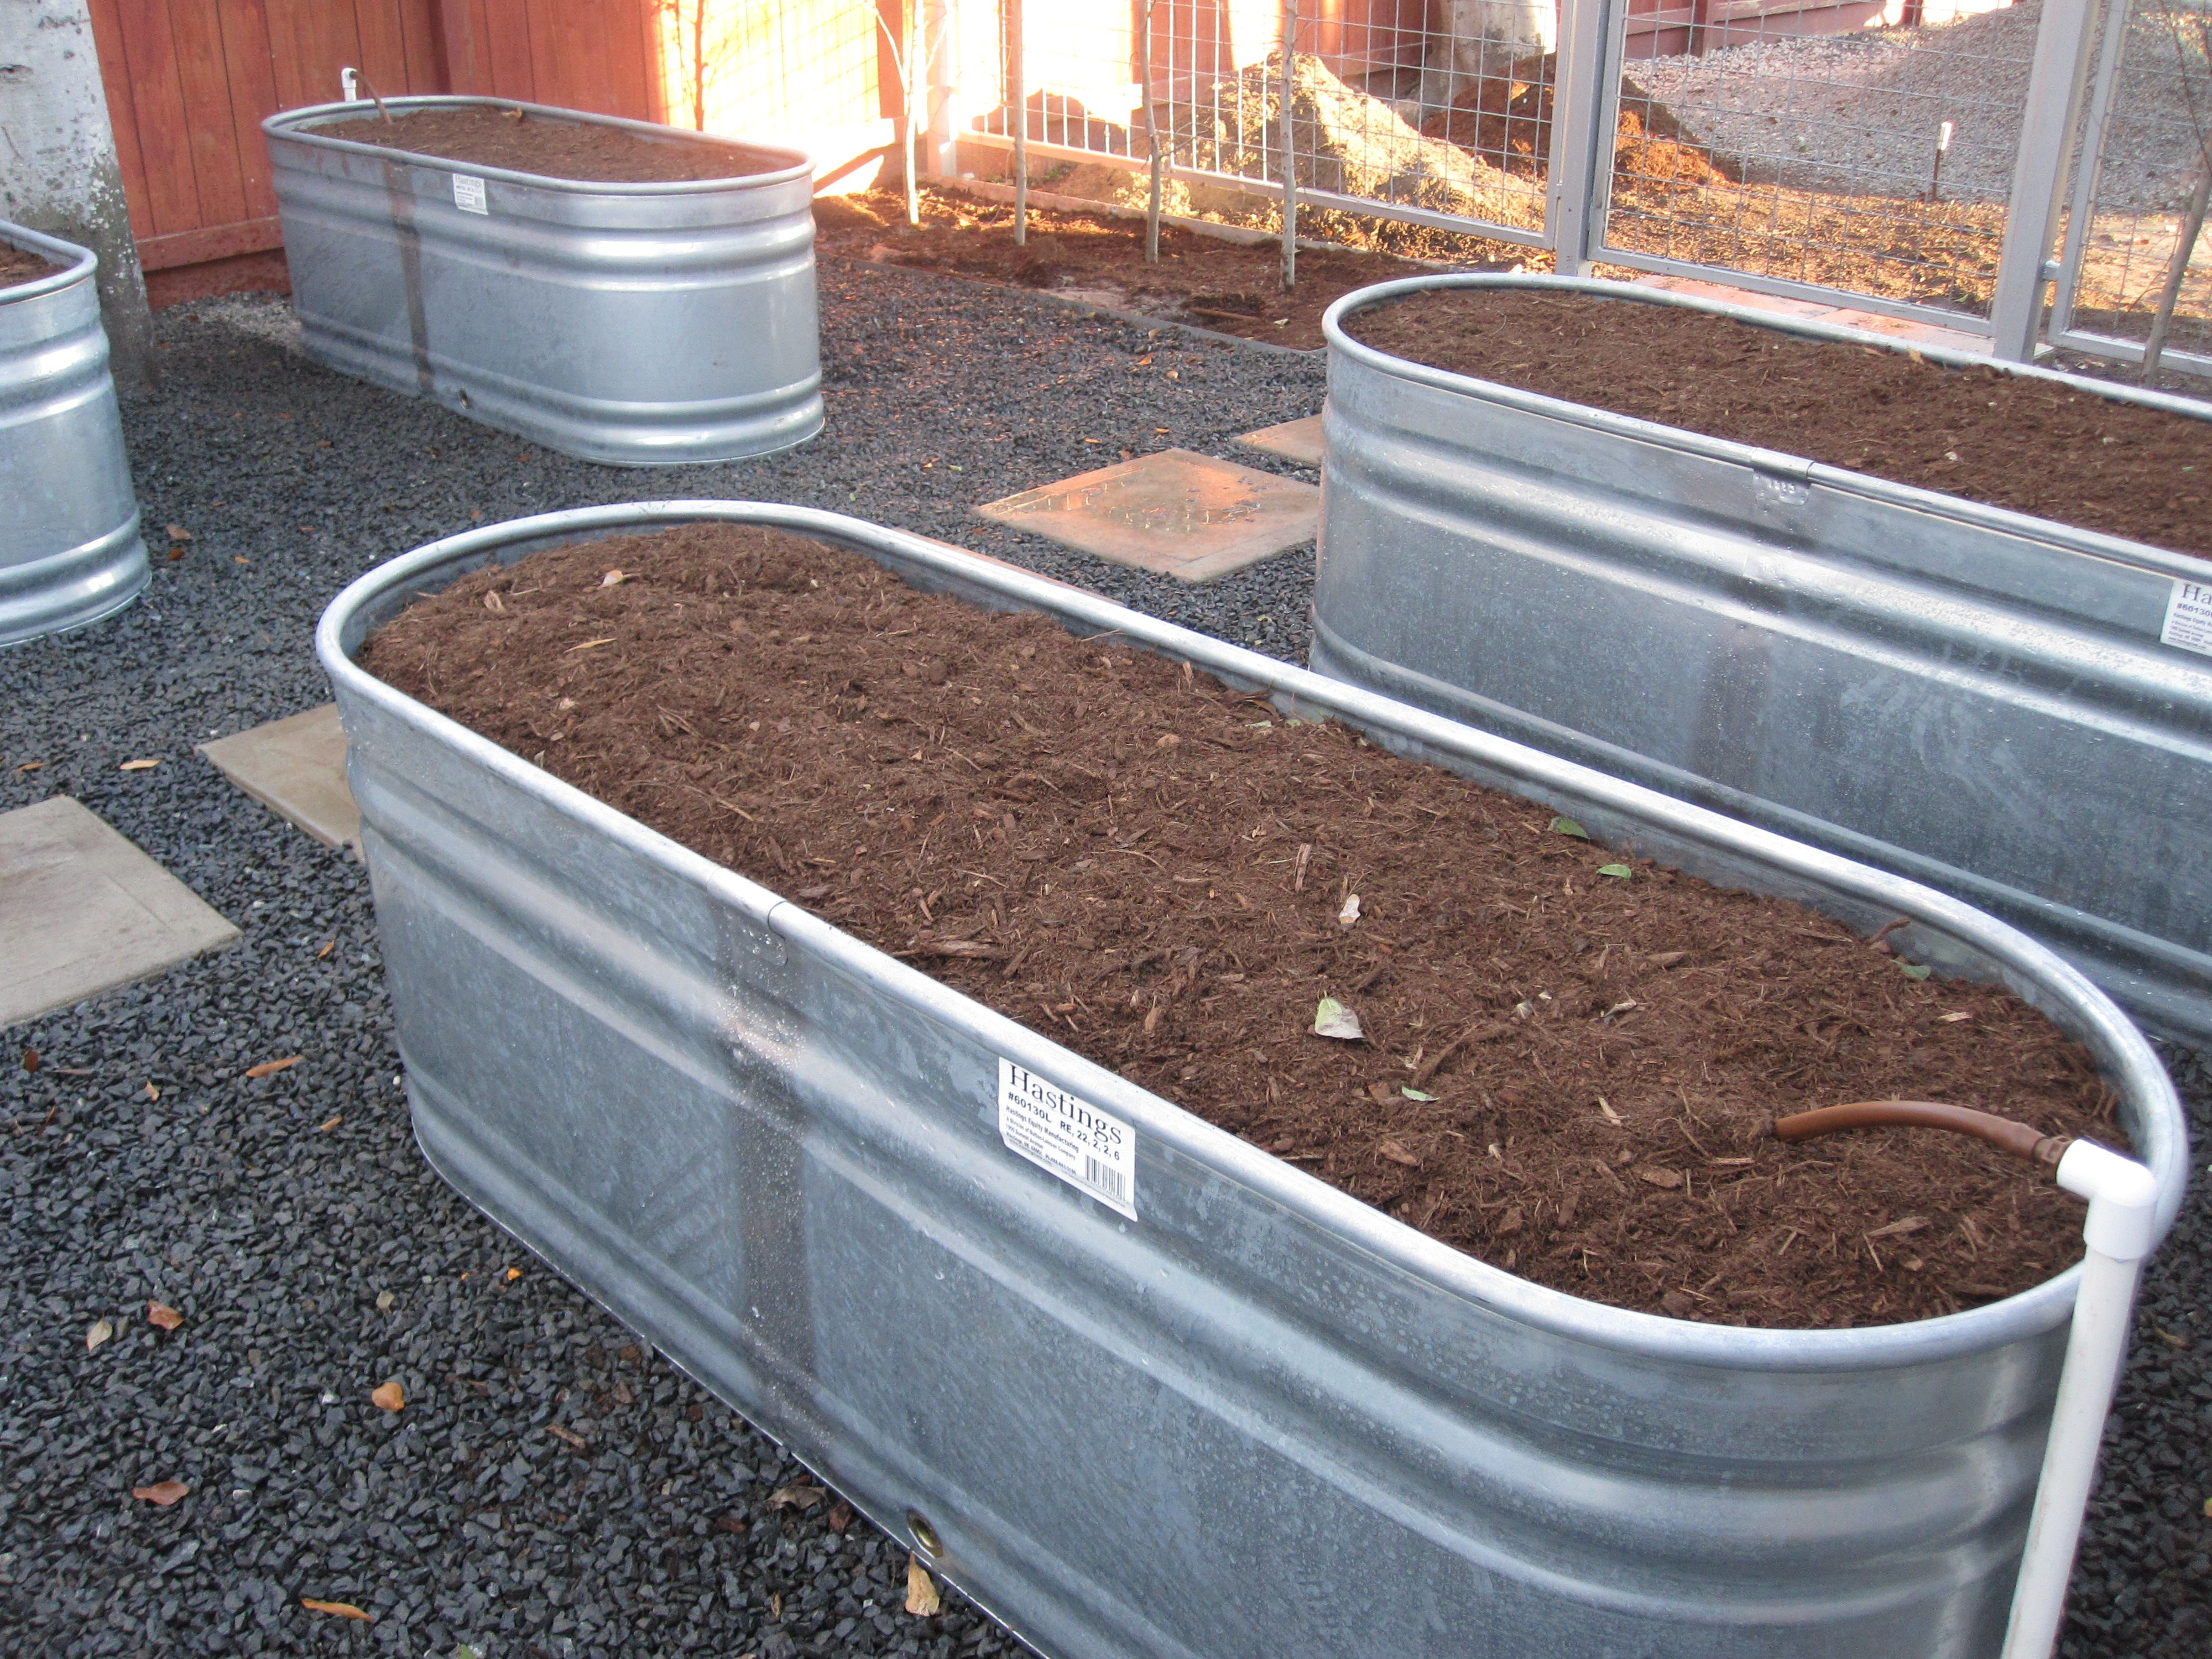 vegetable garden irrigation design | Here is a watering trough turned into a raised bed for vegetables ...